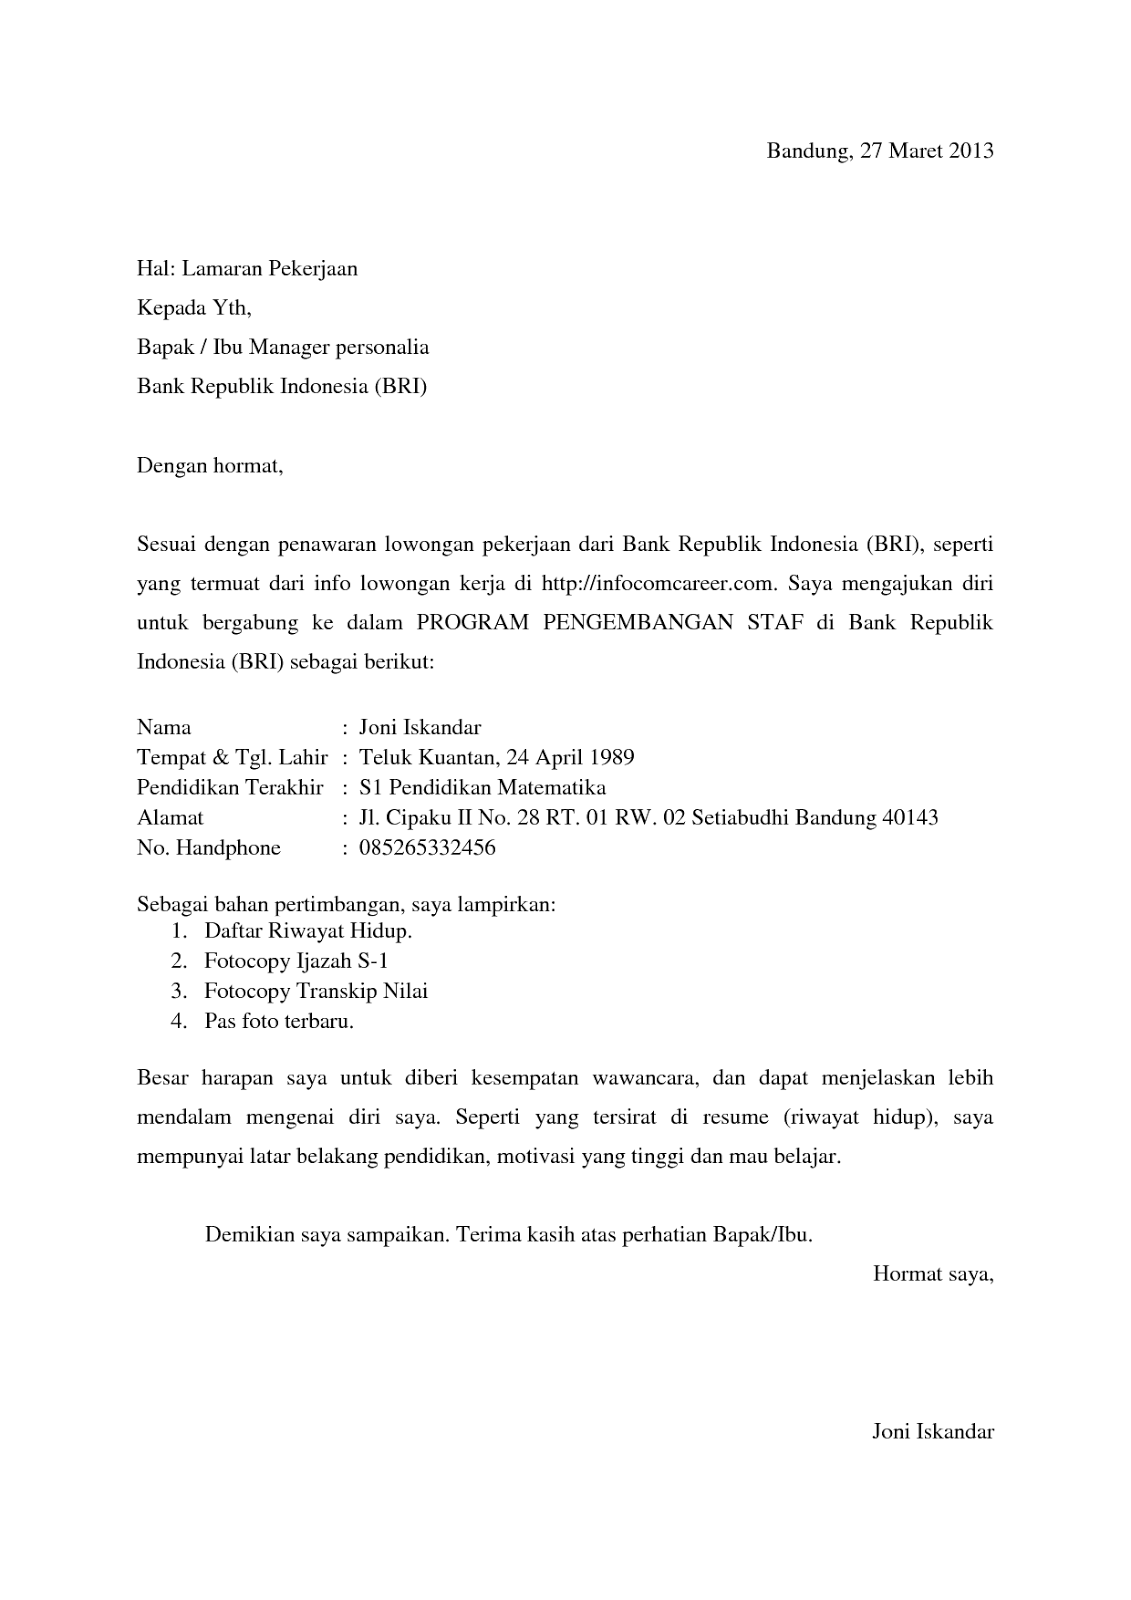 Cover Letter Email Bahasa Inggris